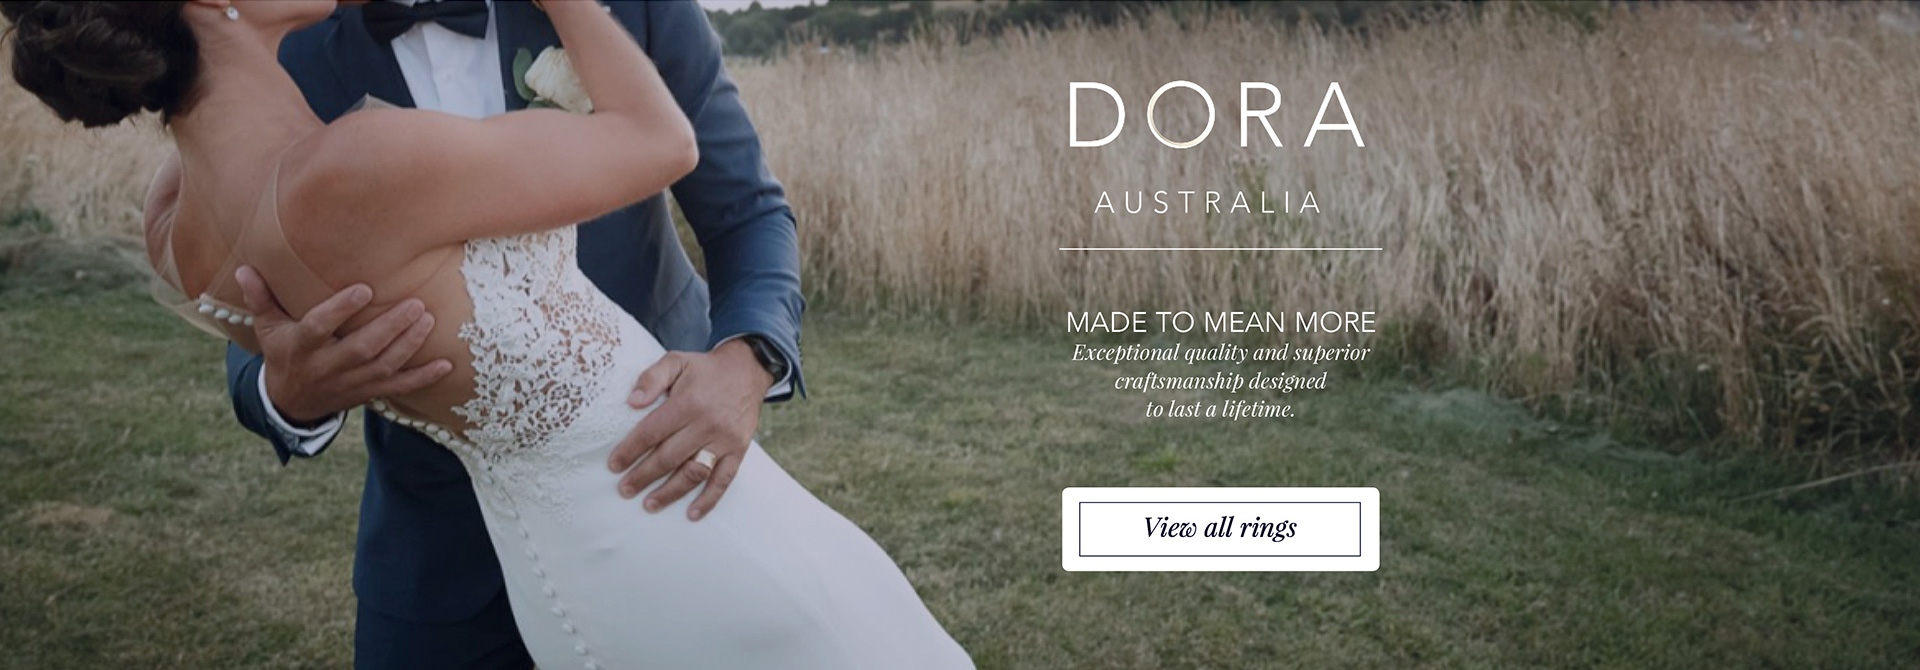 Dora Australia Rings. Made to mean more